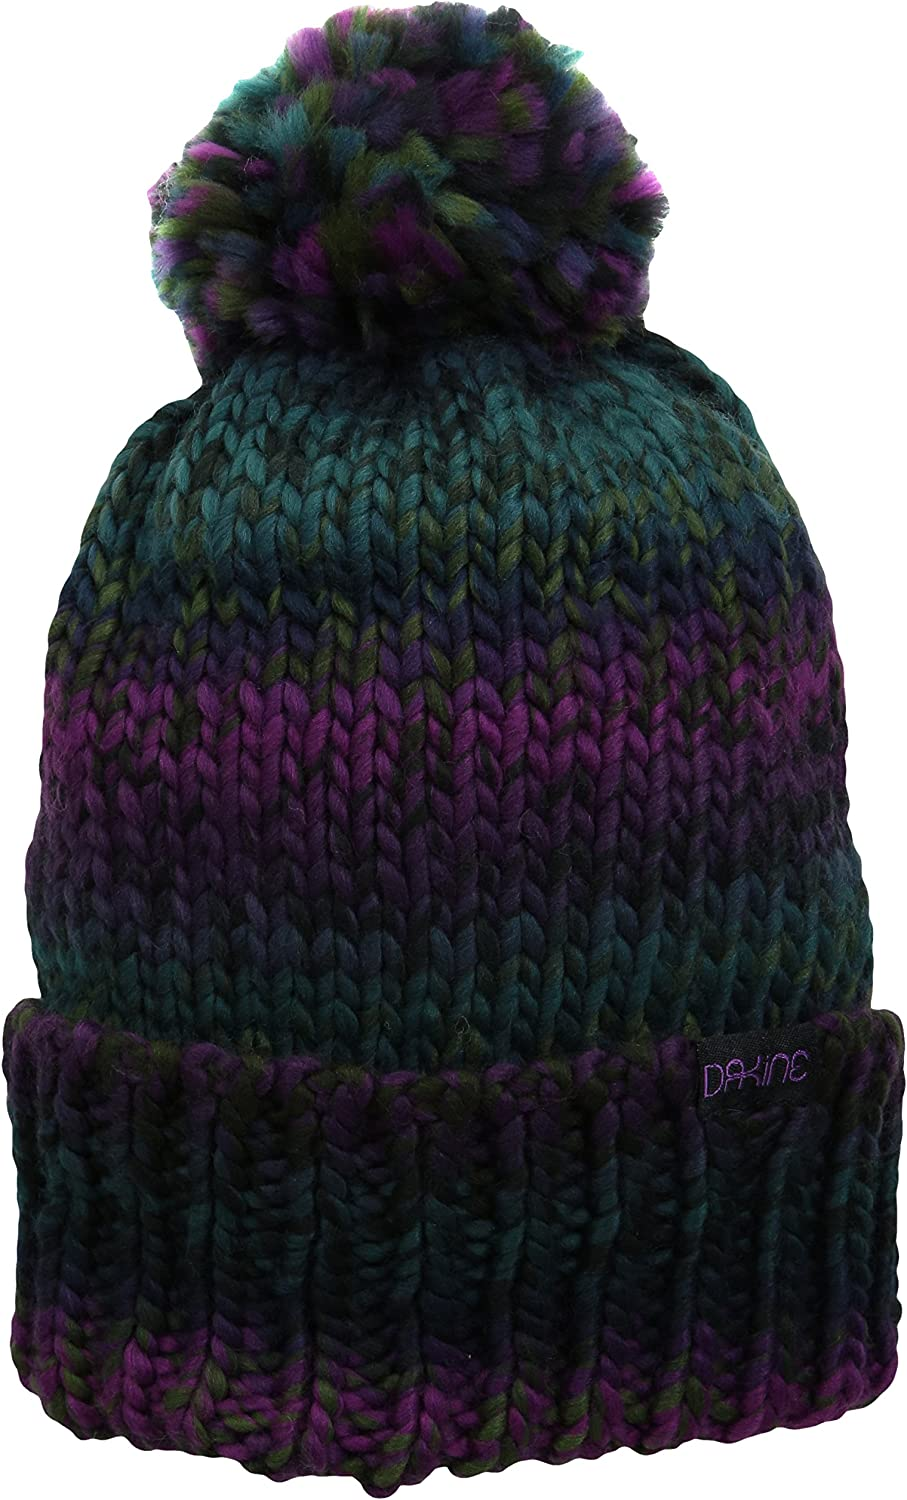 Dakine Women's Jade Beanie, Wildberry, One Size